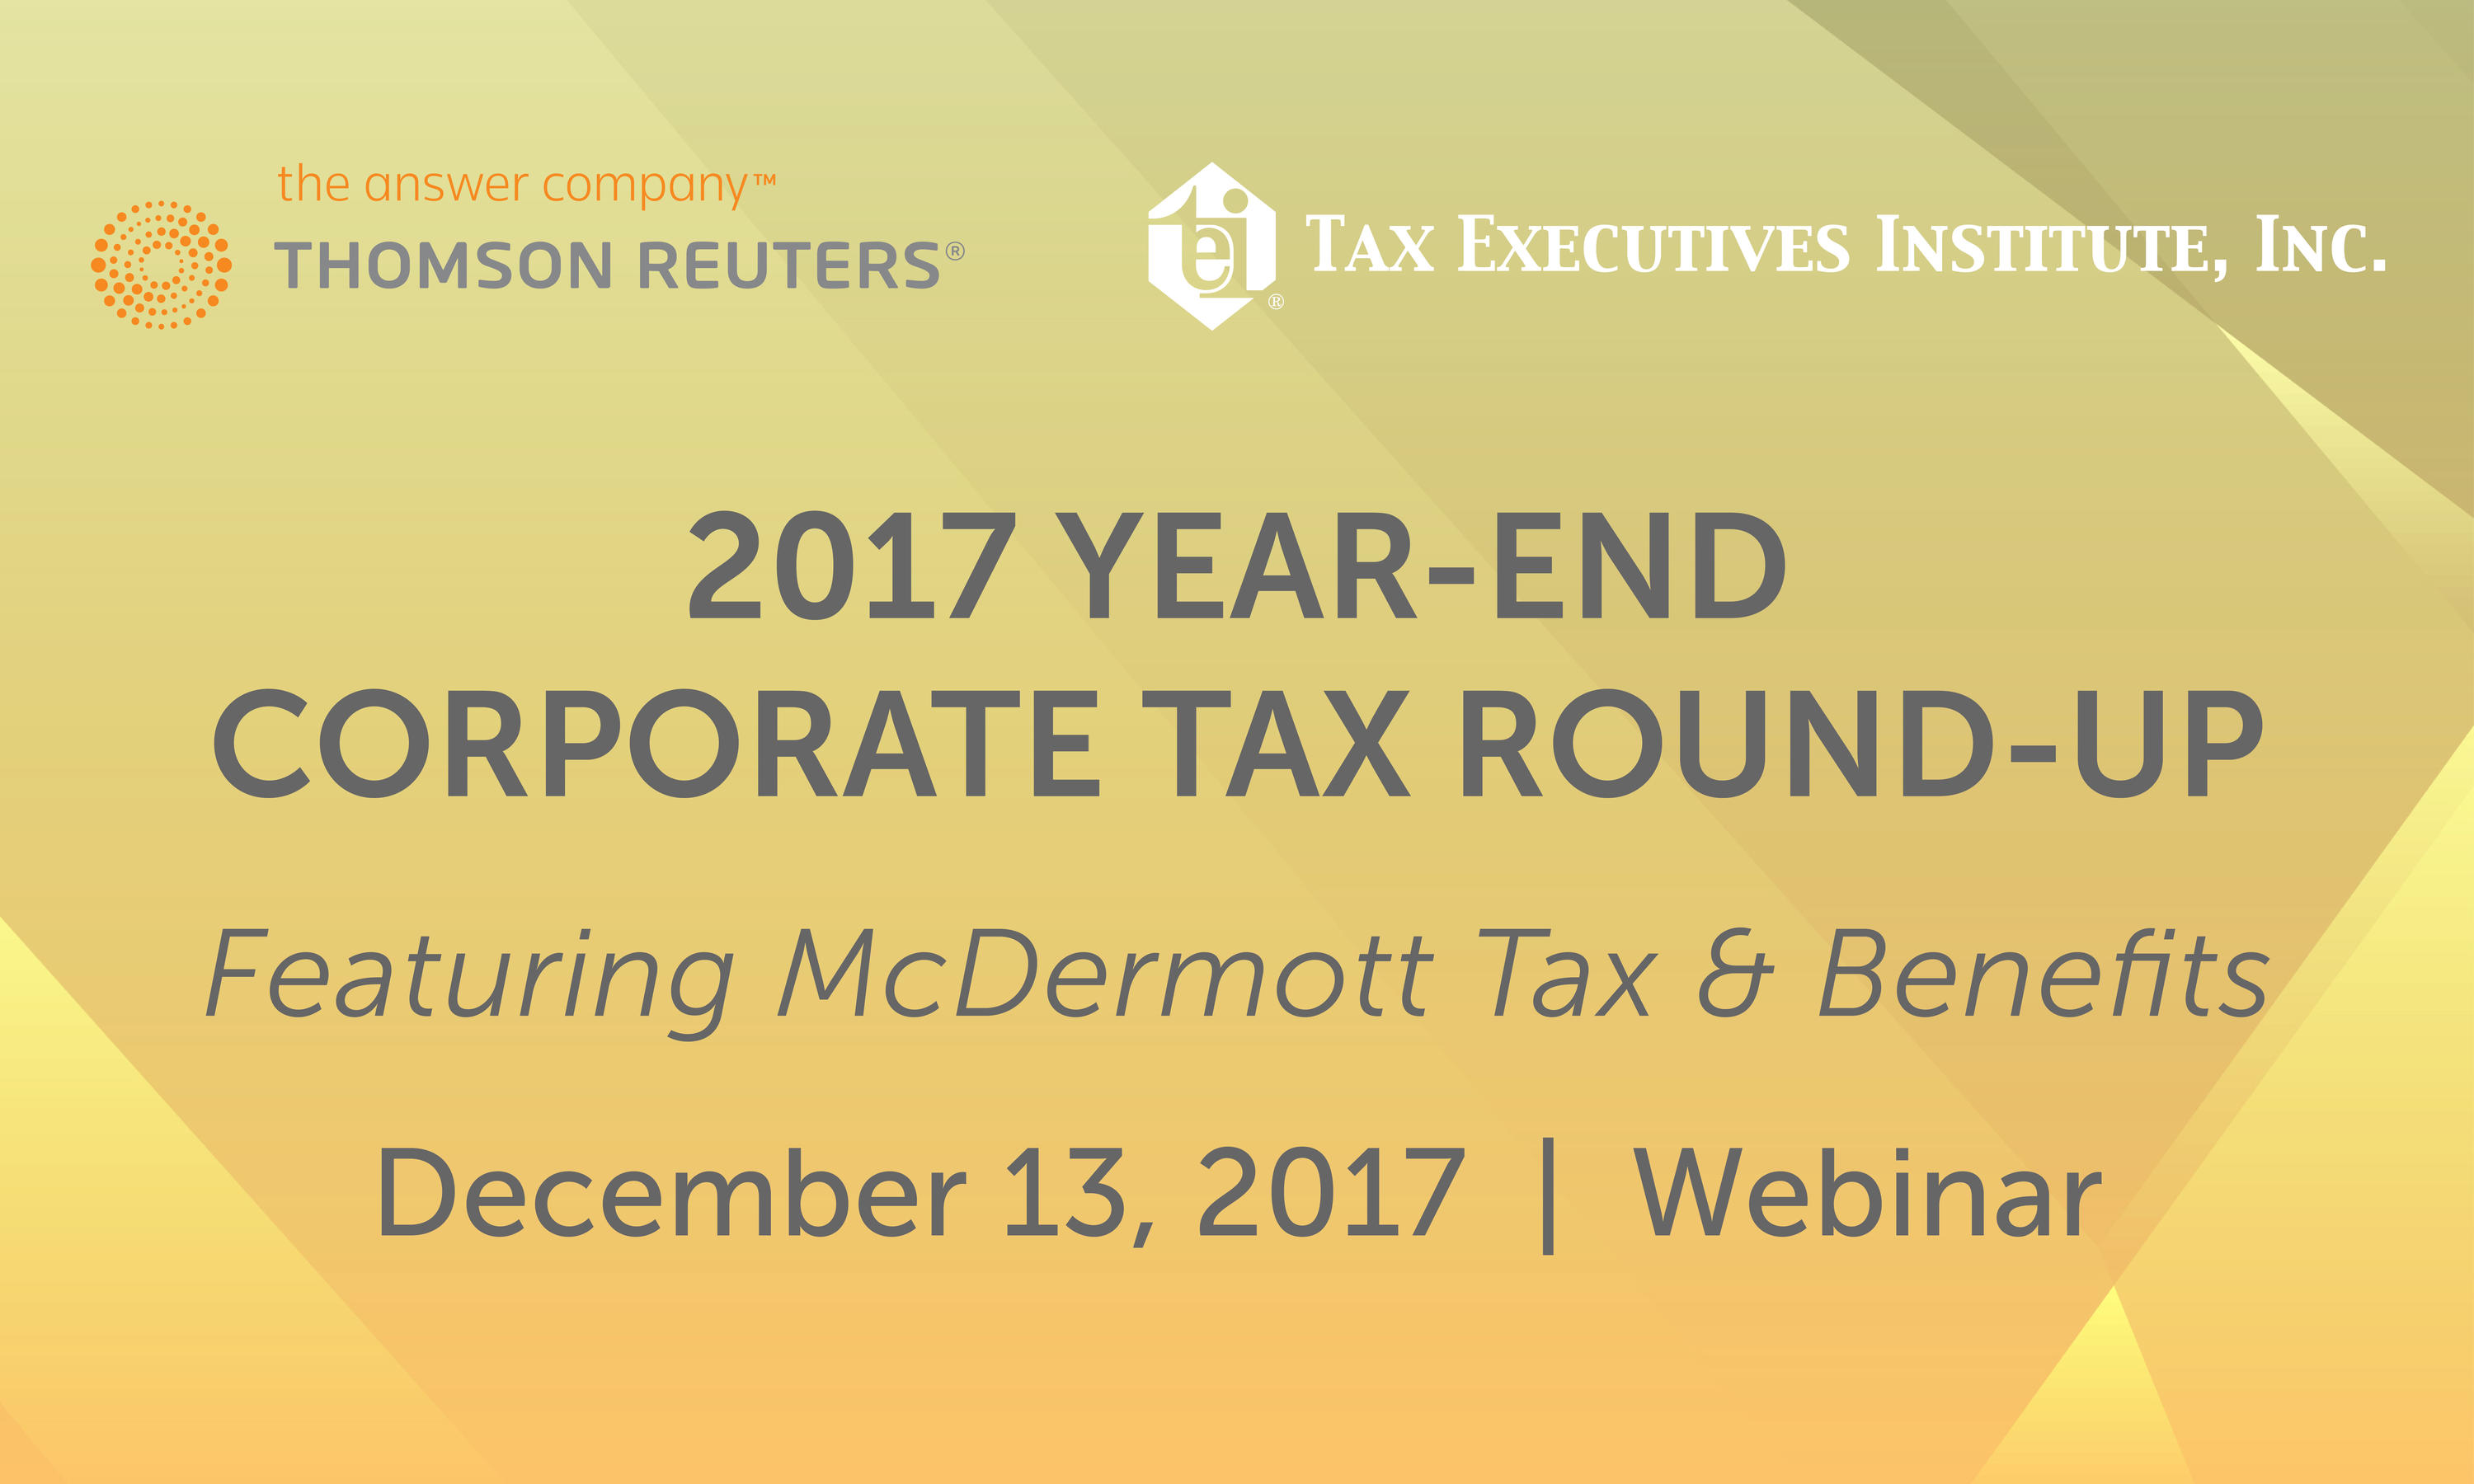 2017 Year-End Corporate Tax Round-Up